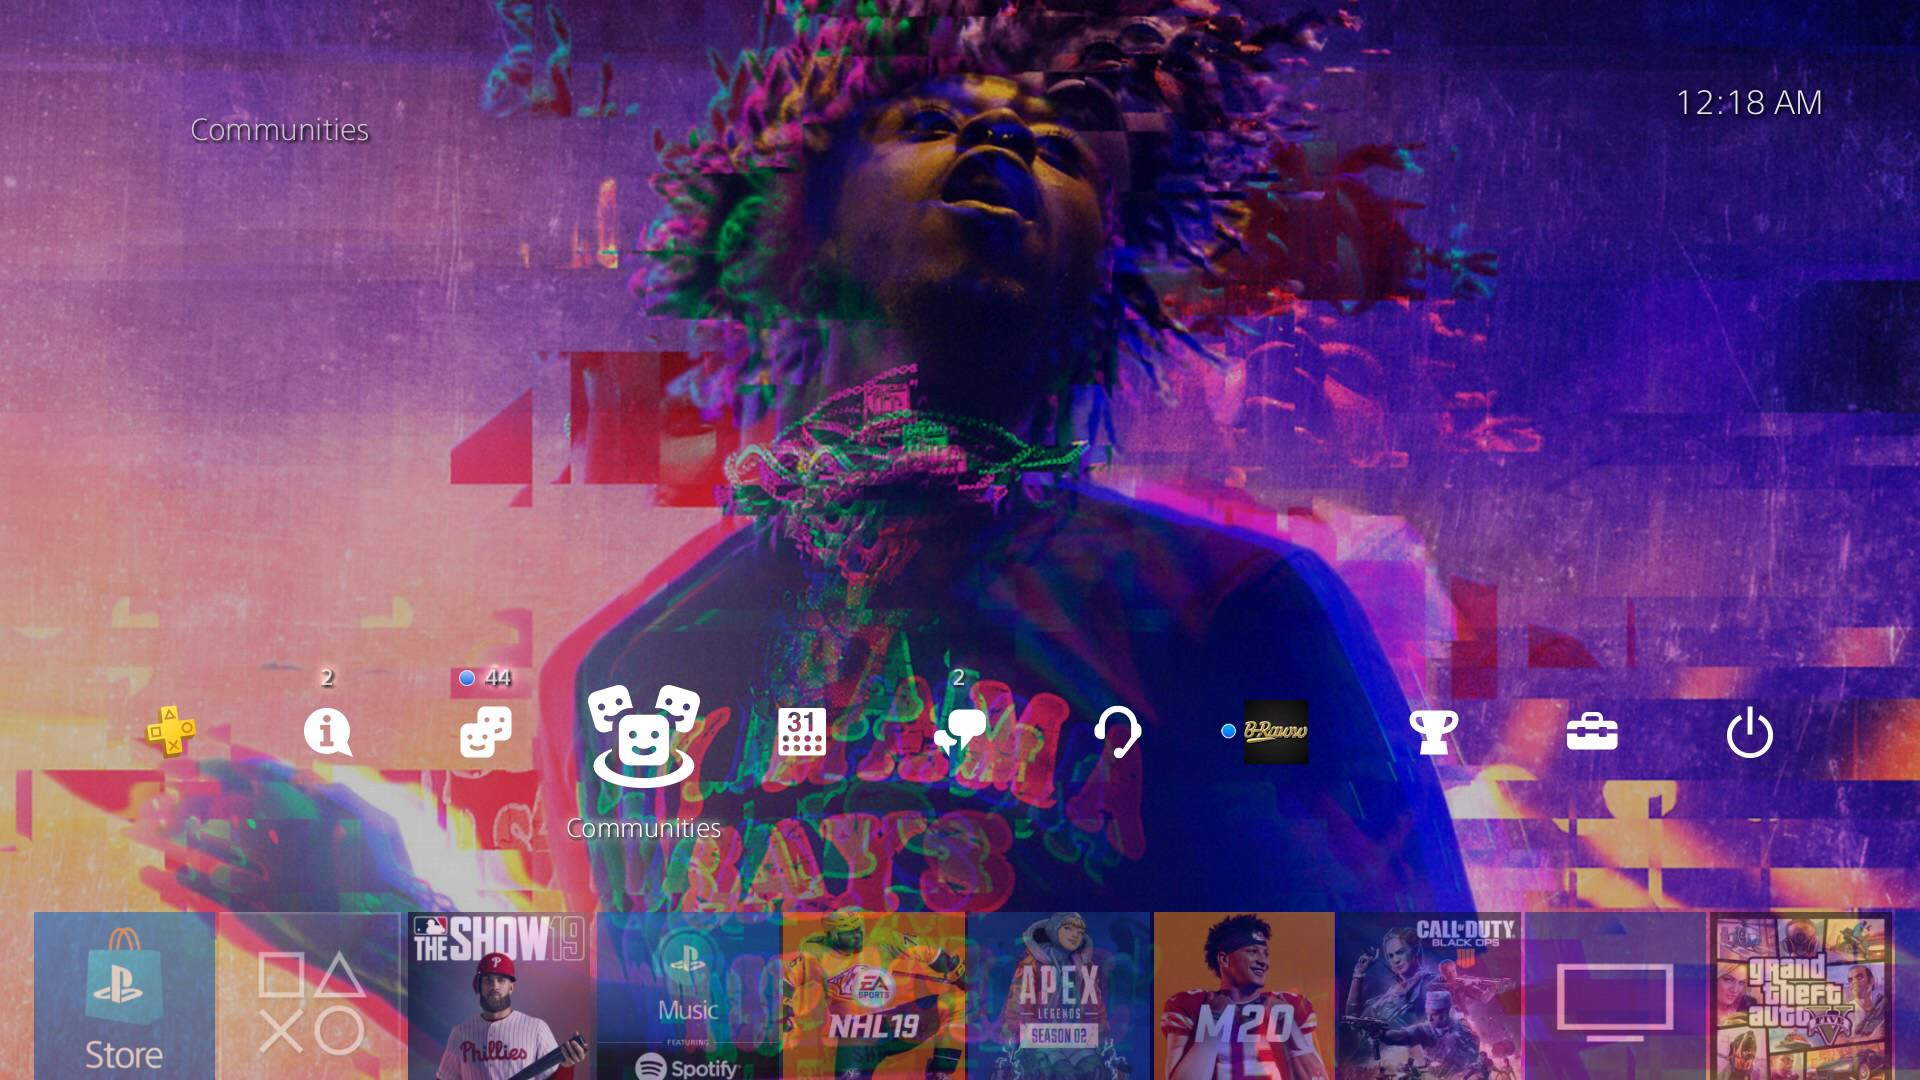 Lil Uzi Vert Ps4 Wallpapers Wallpaper Cave Get hd images of the popular hip hop artist lil uzi vert as well as quick access to his socials. lil uzi vert ps4 wallpapers wallpaper